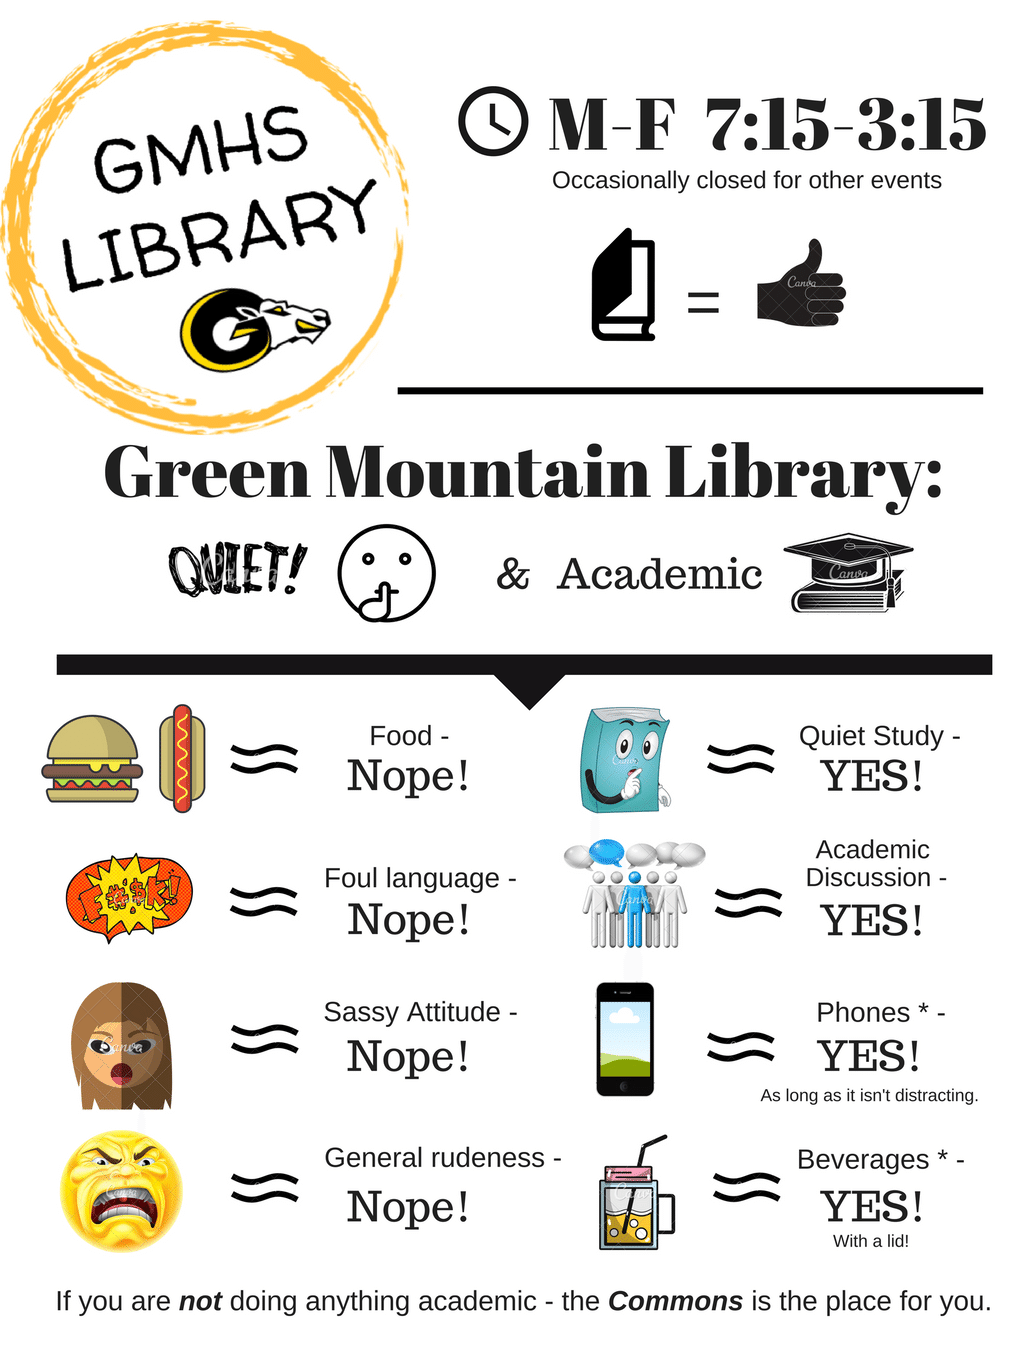 The new flyers that will be placed around the library.